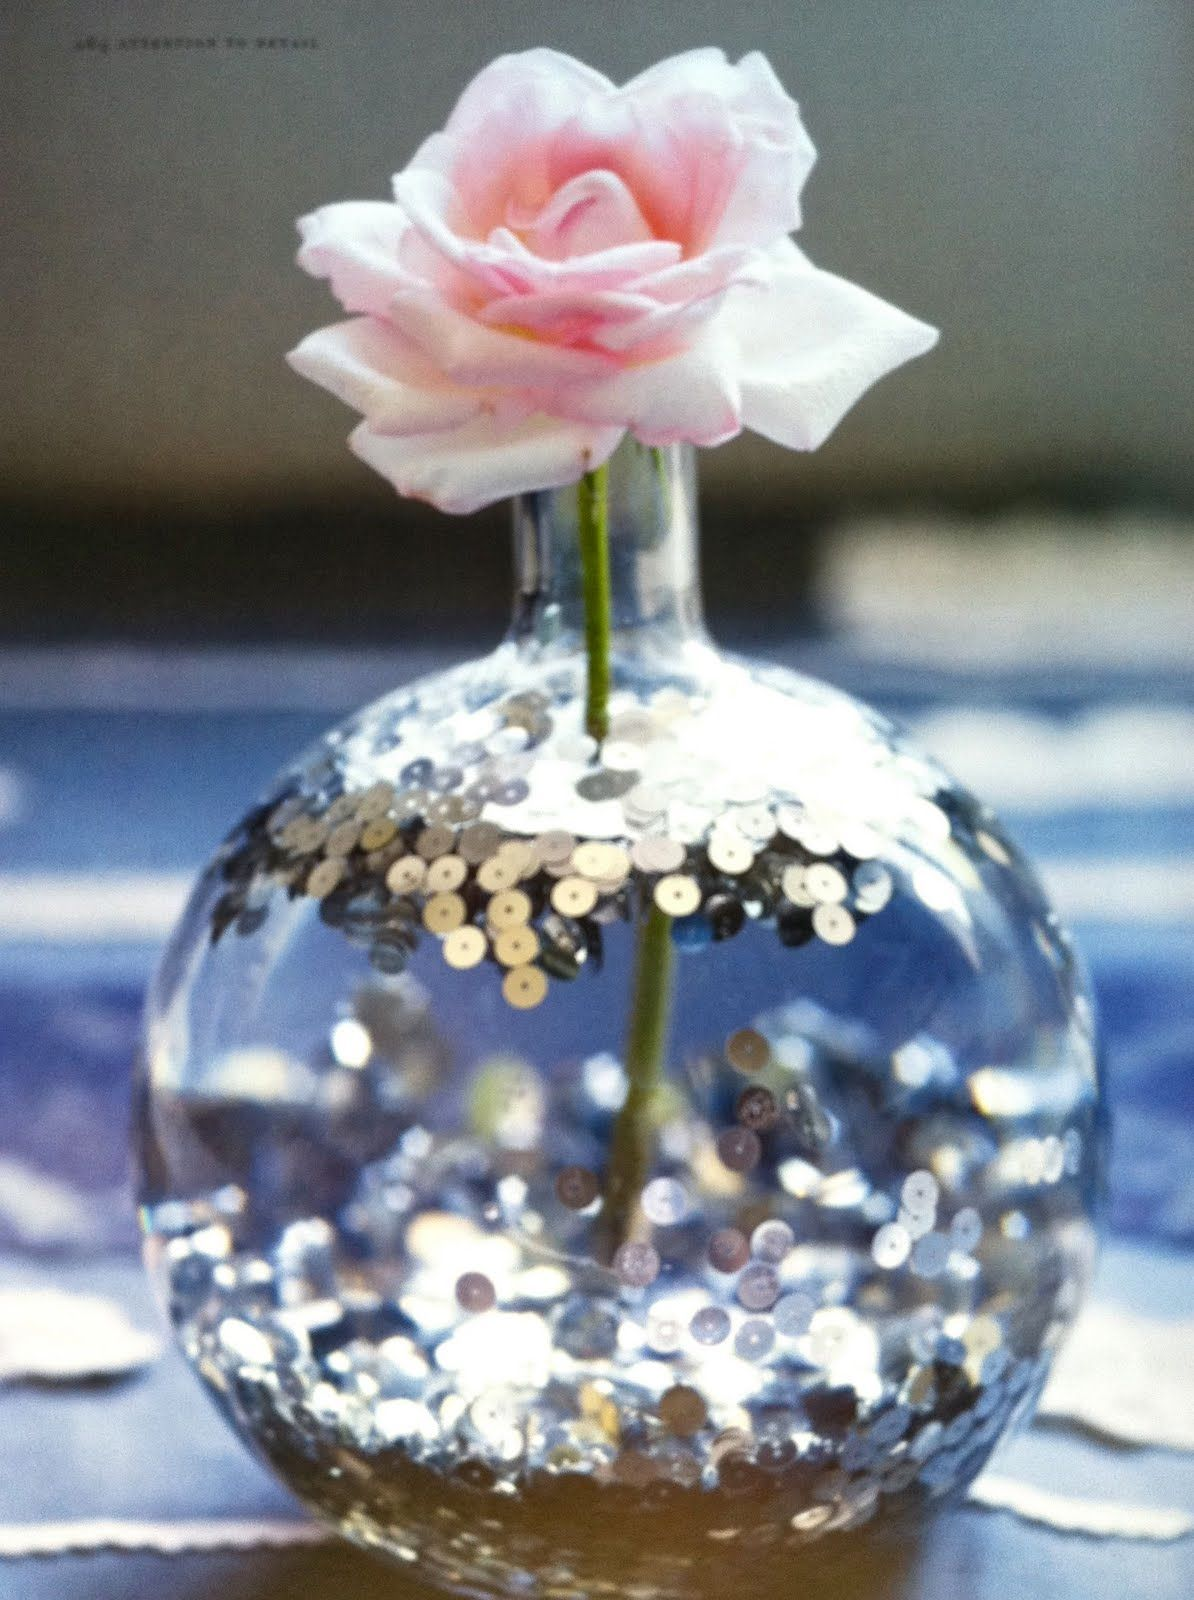 Easy wedding decorations diy  JWK Style Stems and Sequins  Gifts to Make  Pinterest  Sequins